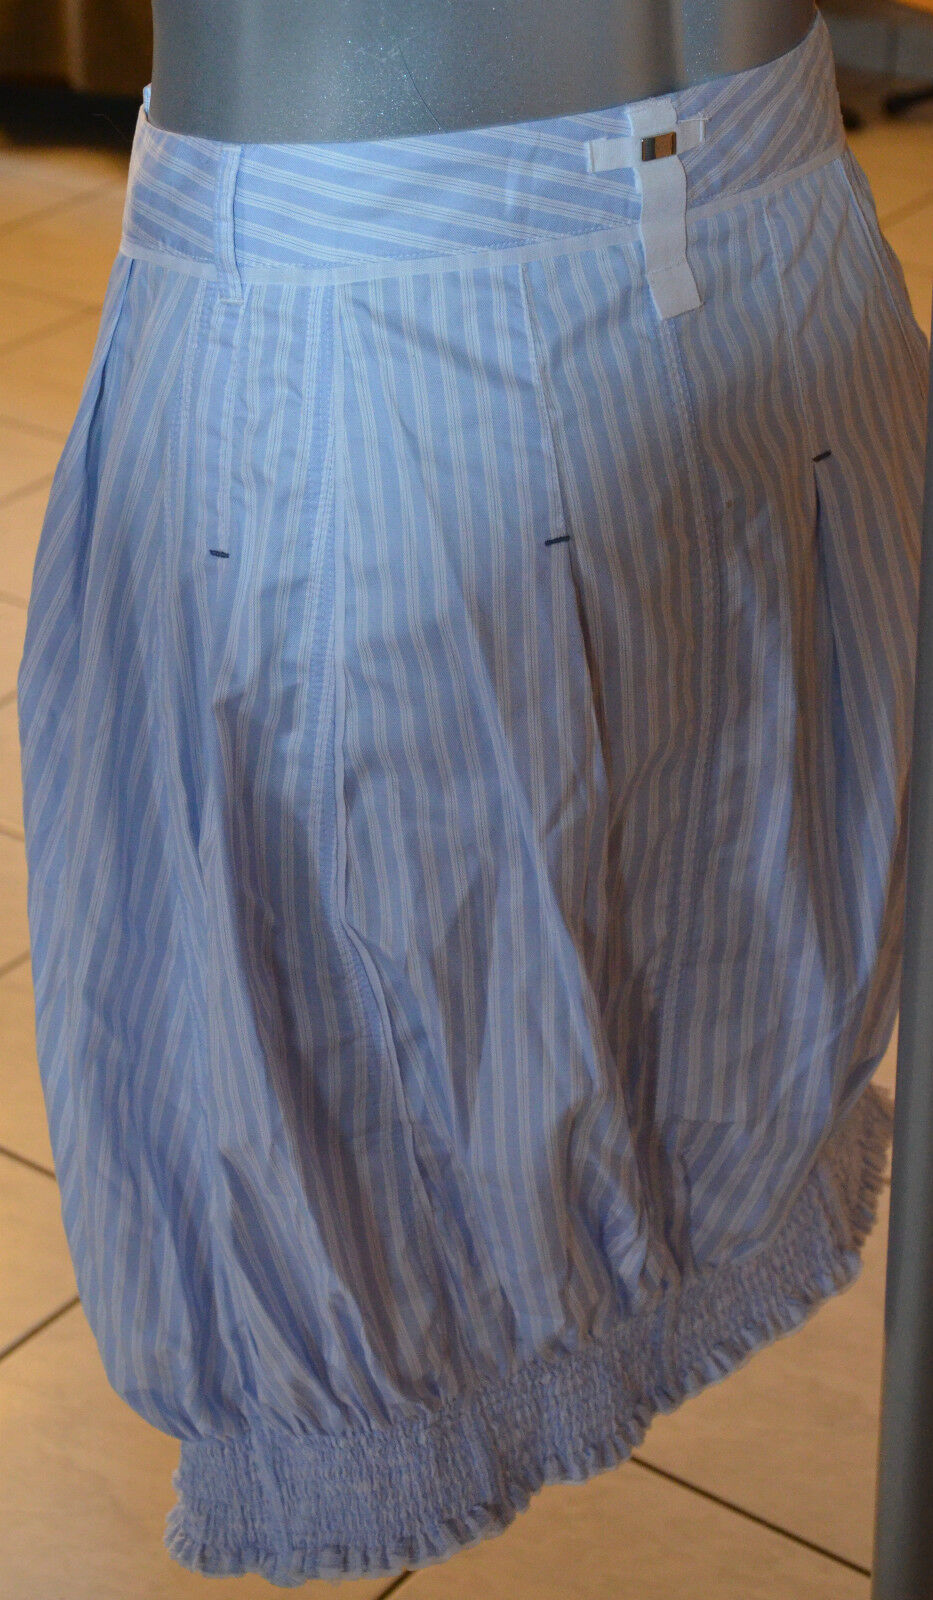 Skirt asymmetric sky bluee and white HIGH USE size 36 new LABEL